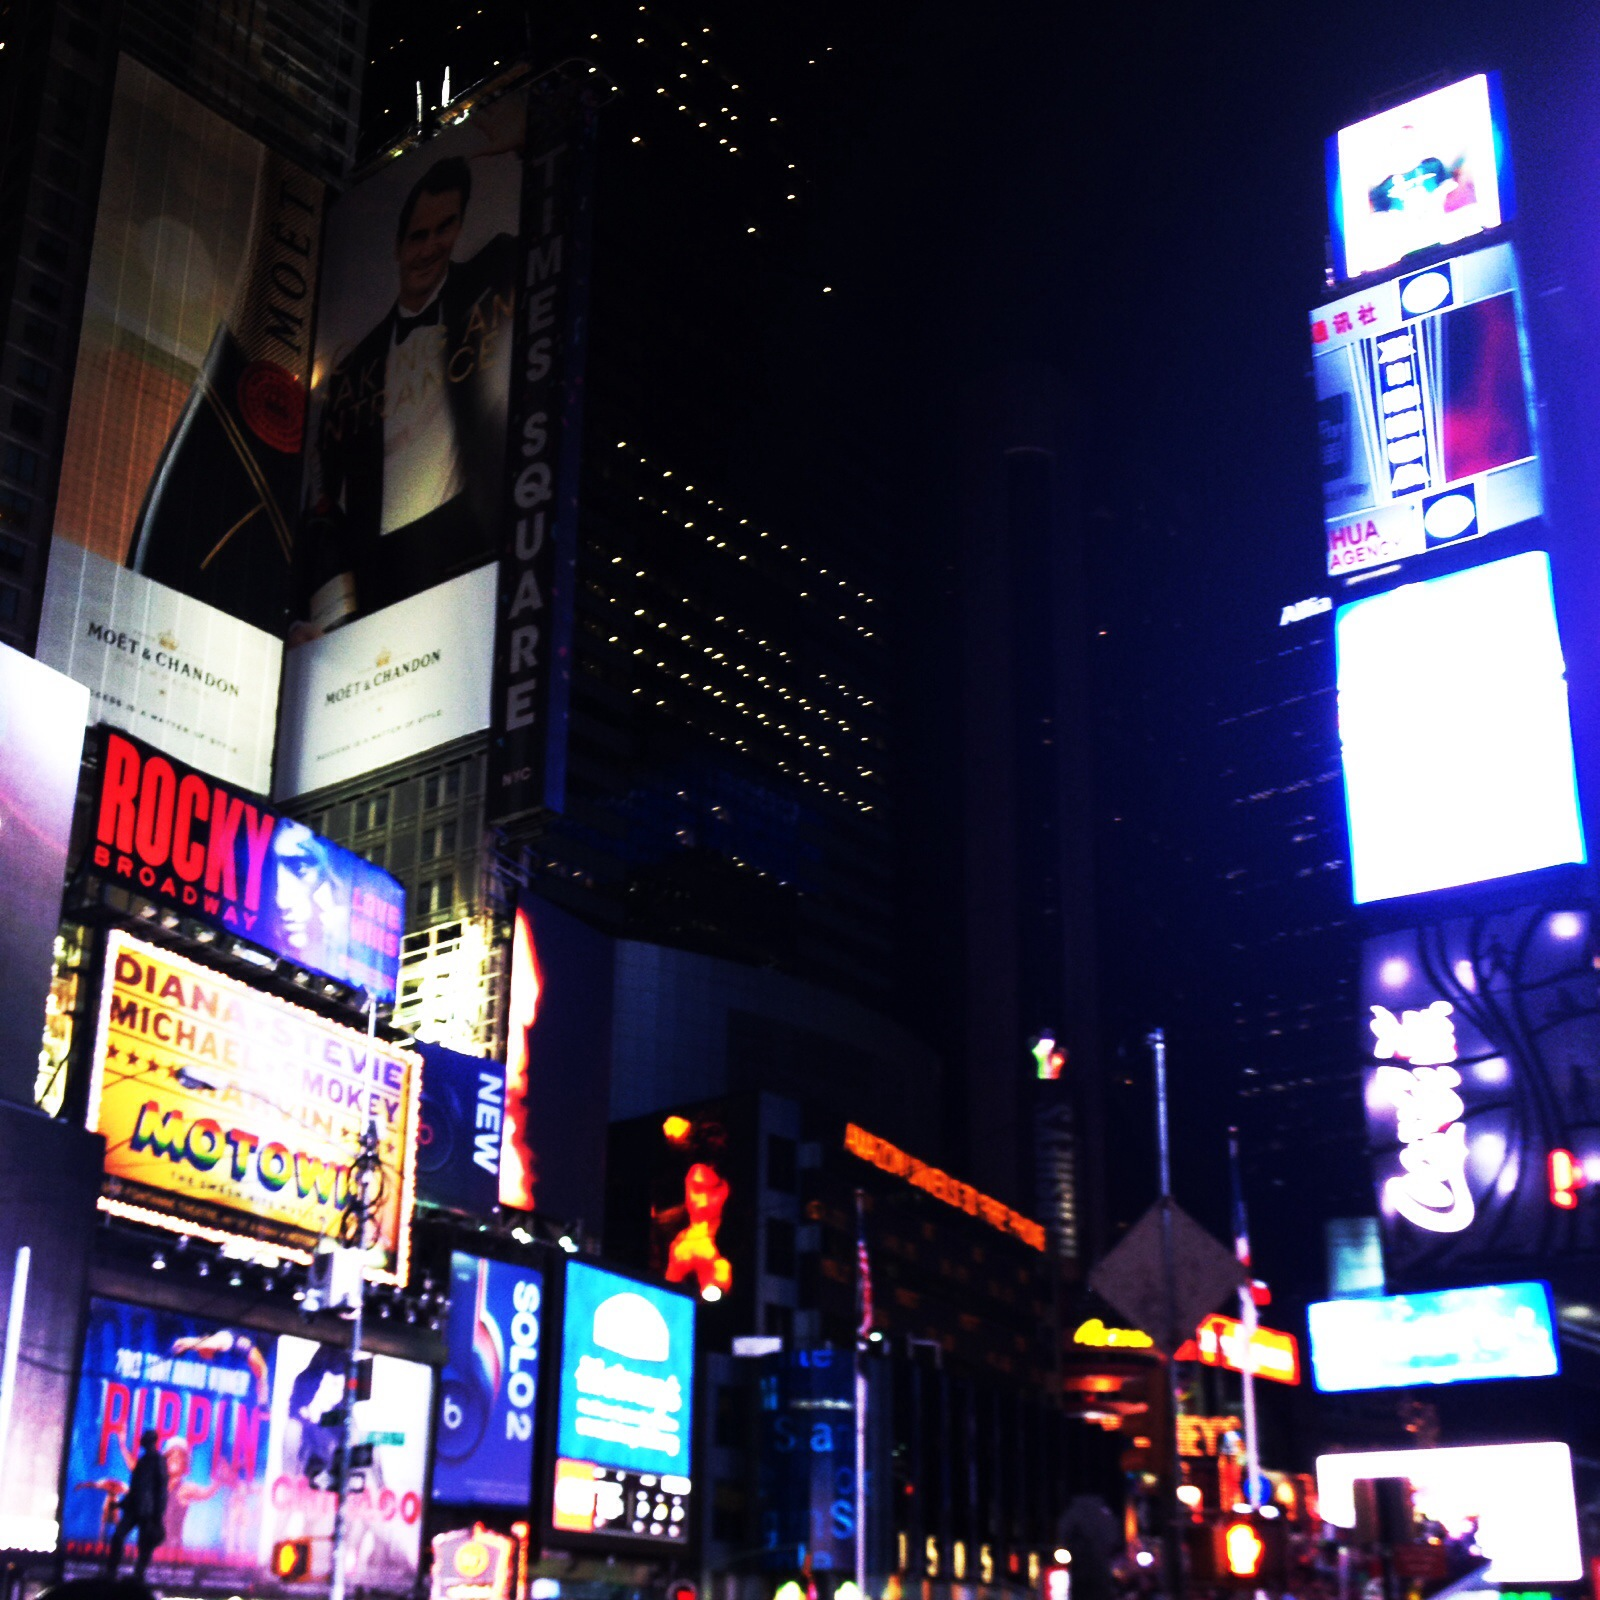 New york top 10 things to do edibles and travels for Times square new york things to do